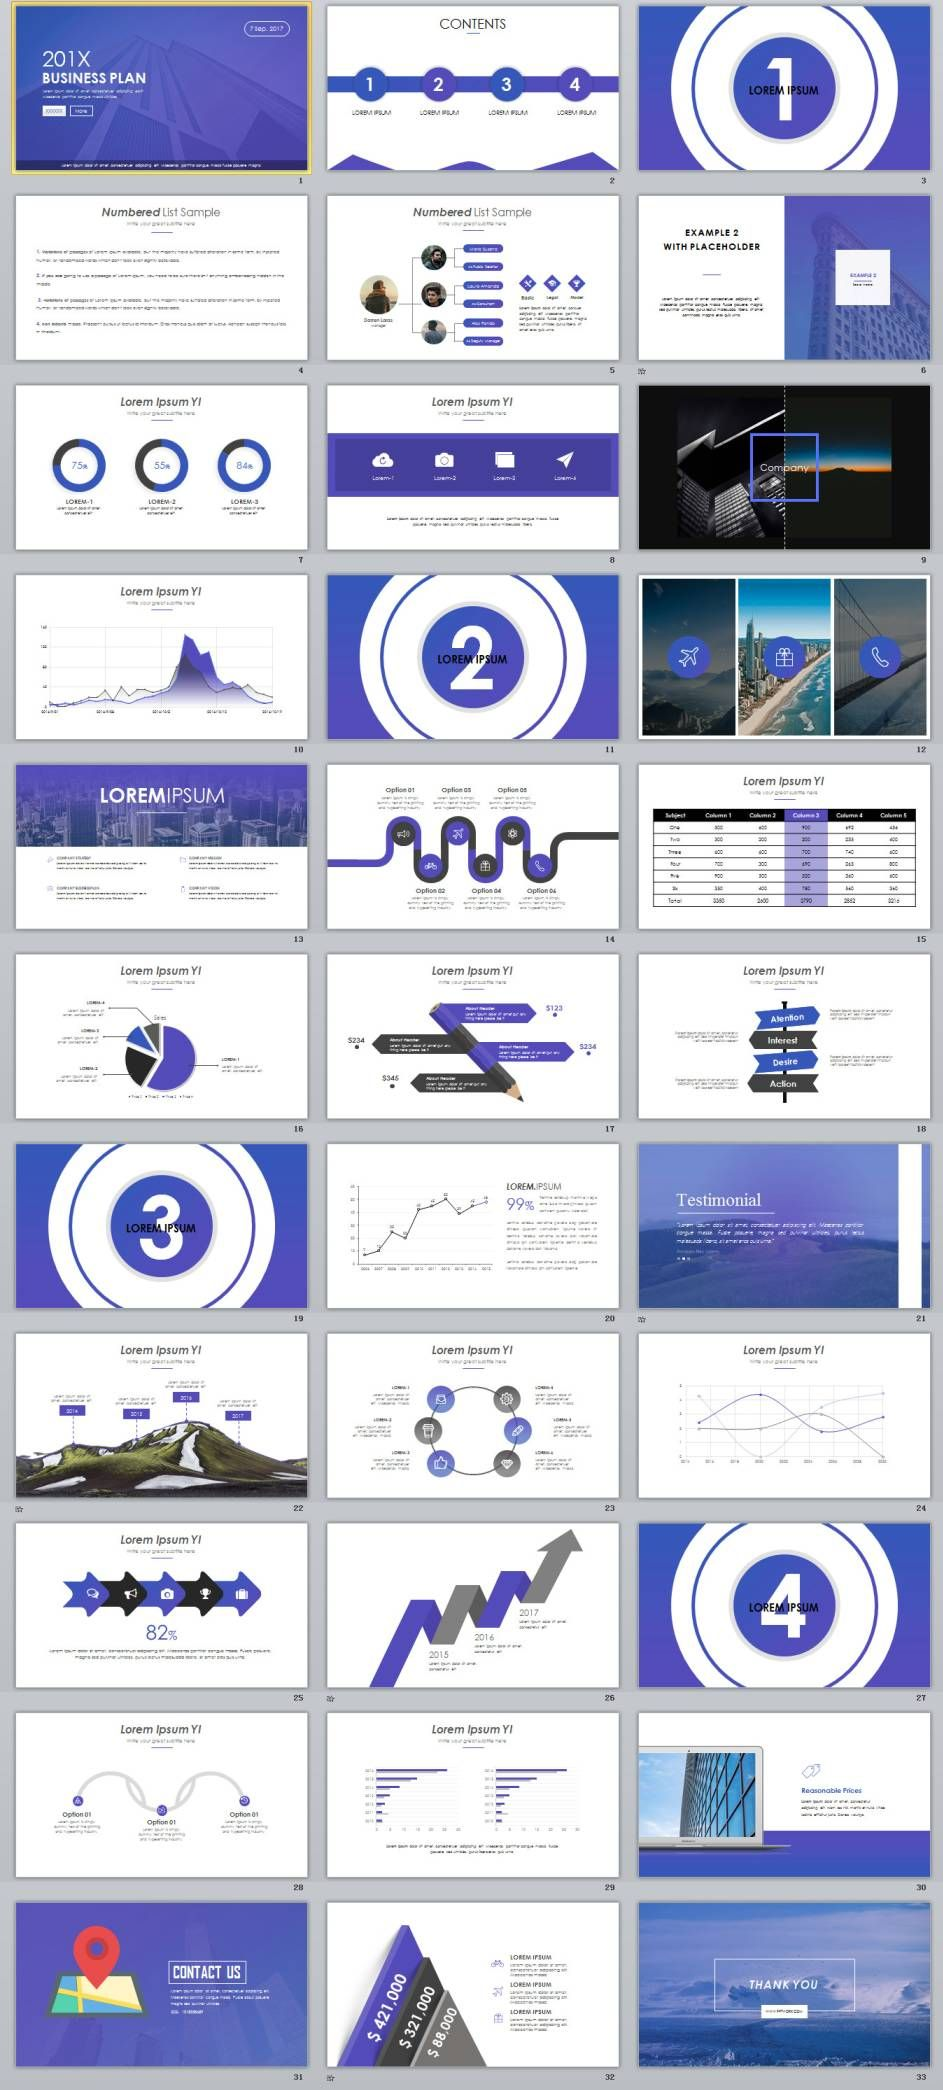 33 business plan chart powerpoint template apresentao 33 business plan chart powerpoint template the highest quality powerpoint templates and keynote templates download toneelgroepblik Gallery